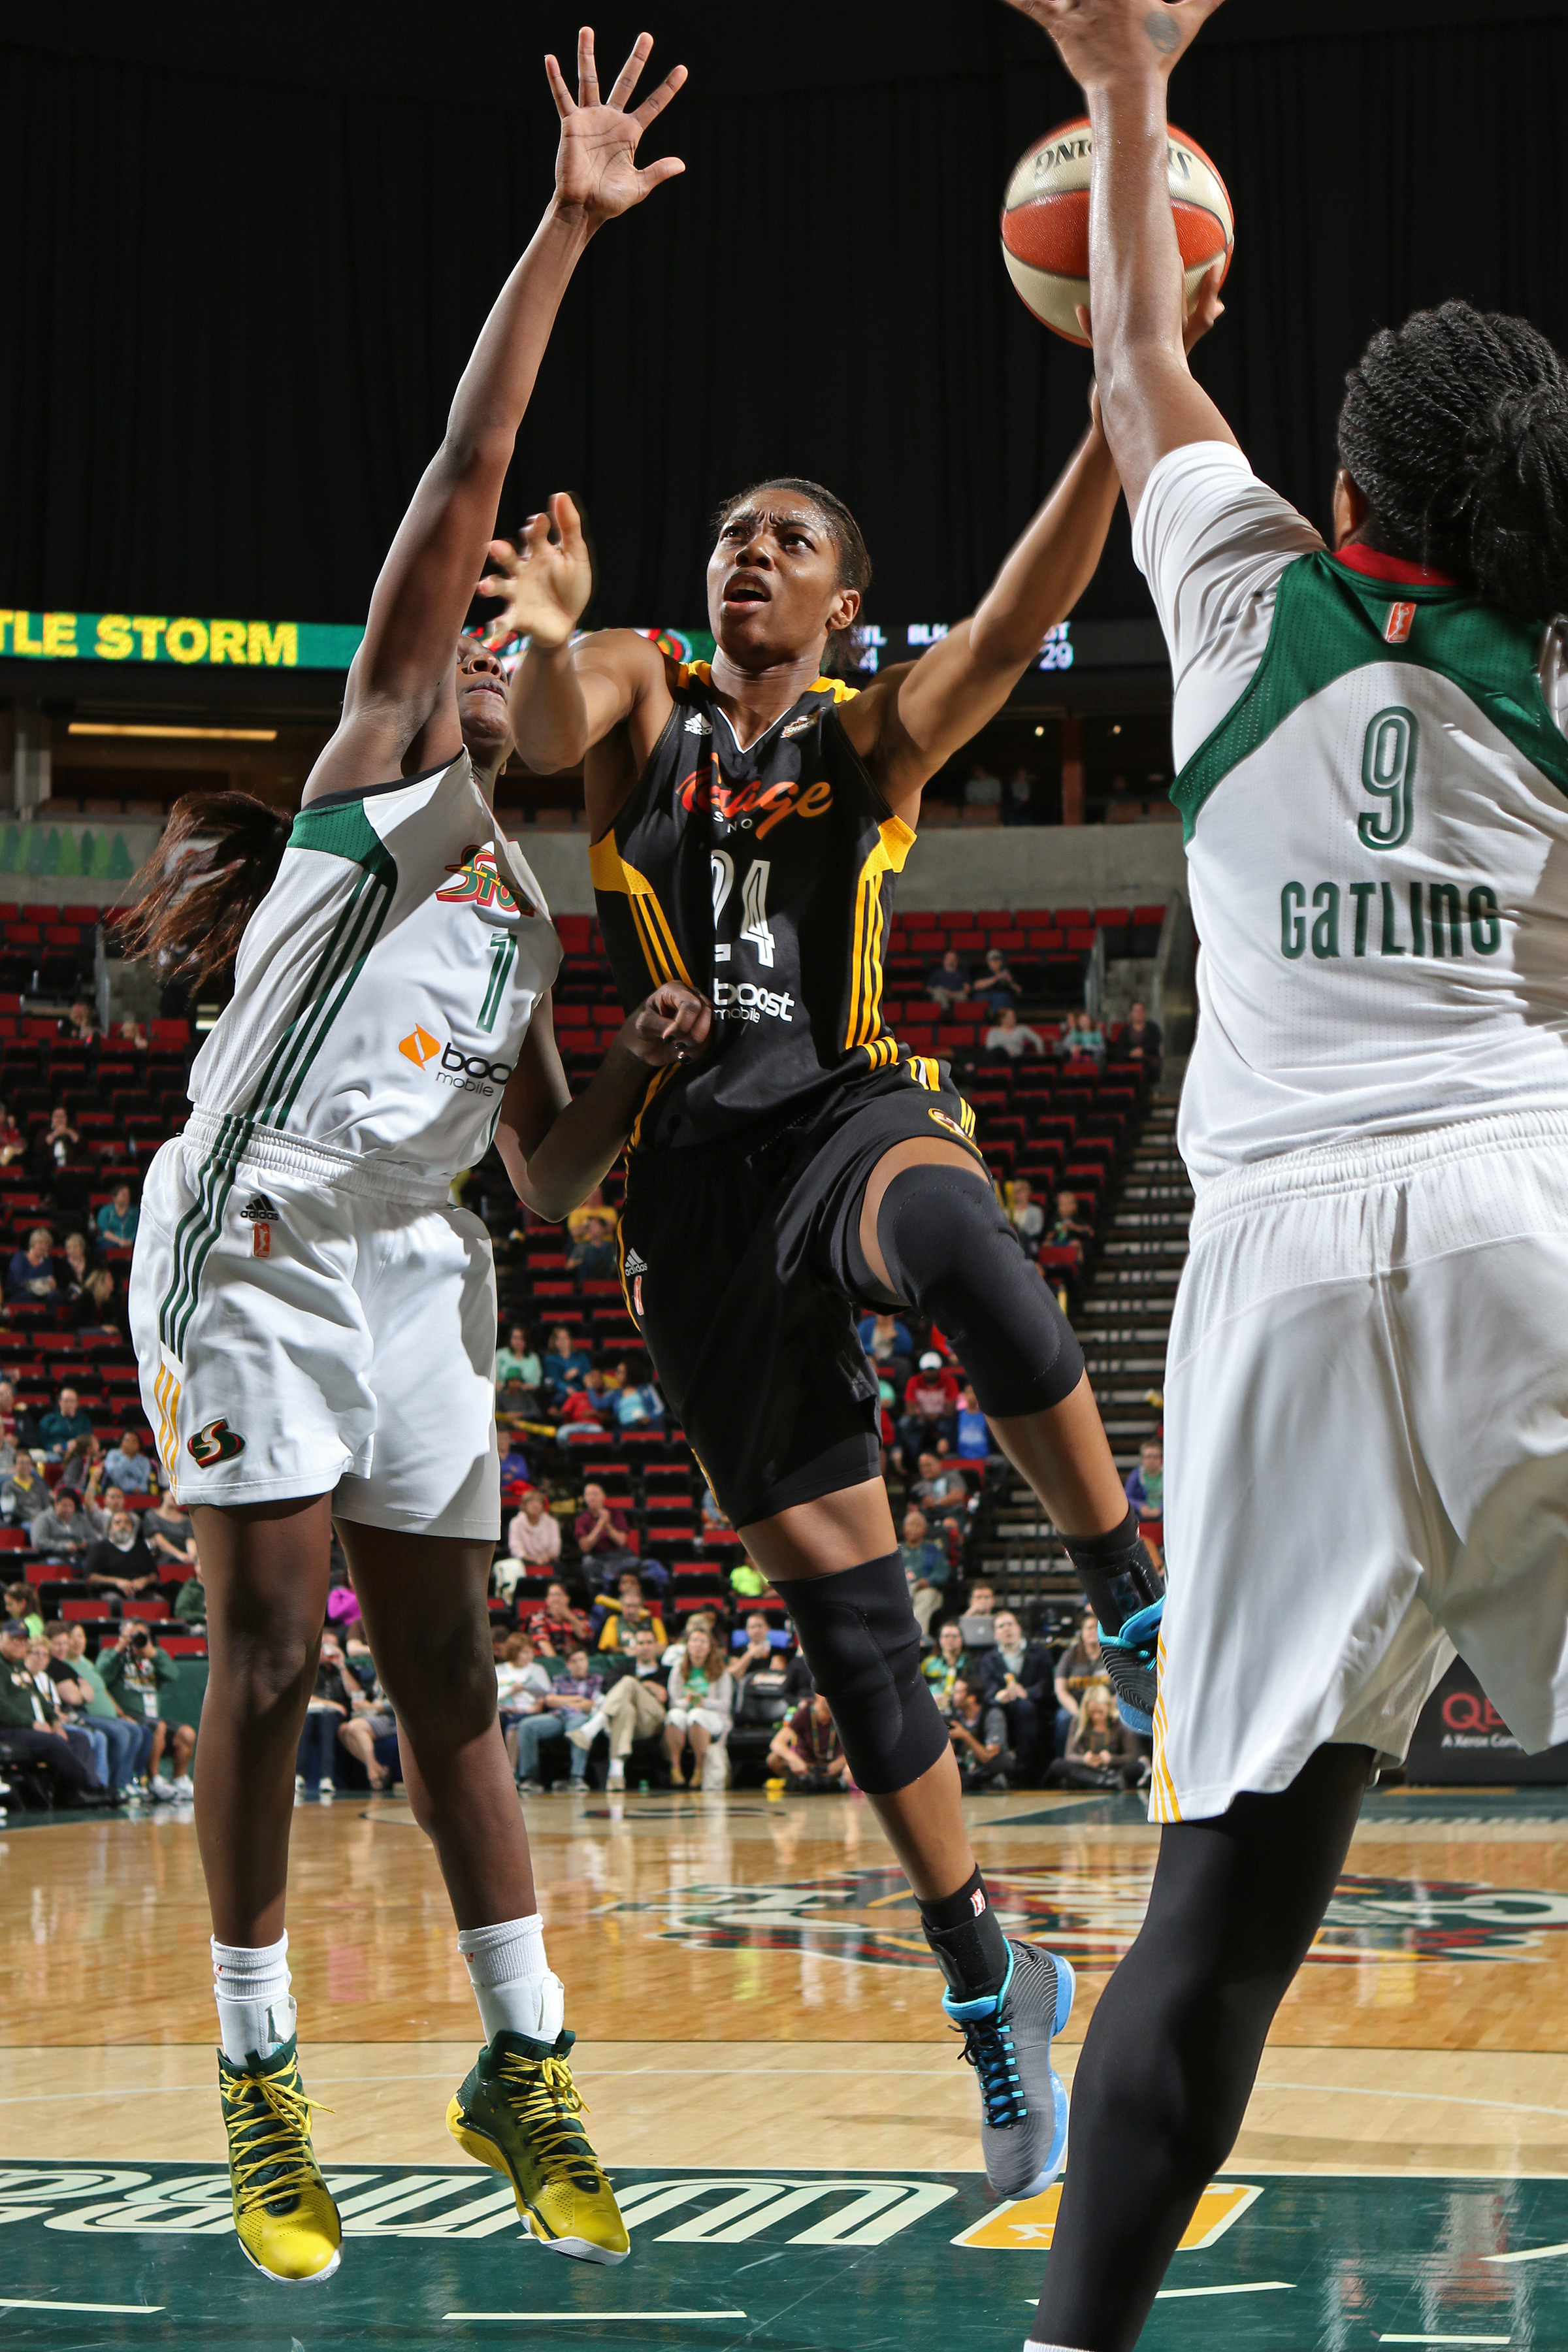 SEATTLE, WA - SEPTEMBER 3:  Vicki Baugh #24 of the Tulsa Shock drives to the basket against the Seattle Storm September 3, 2015 at Key Arena in Seattle, Washington. (Photo by Joshua Huston/NBAE via Getty Images)